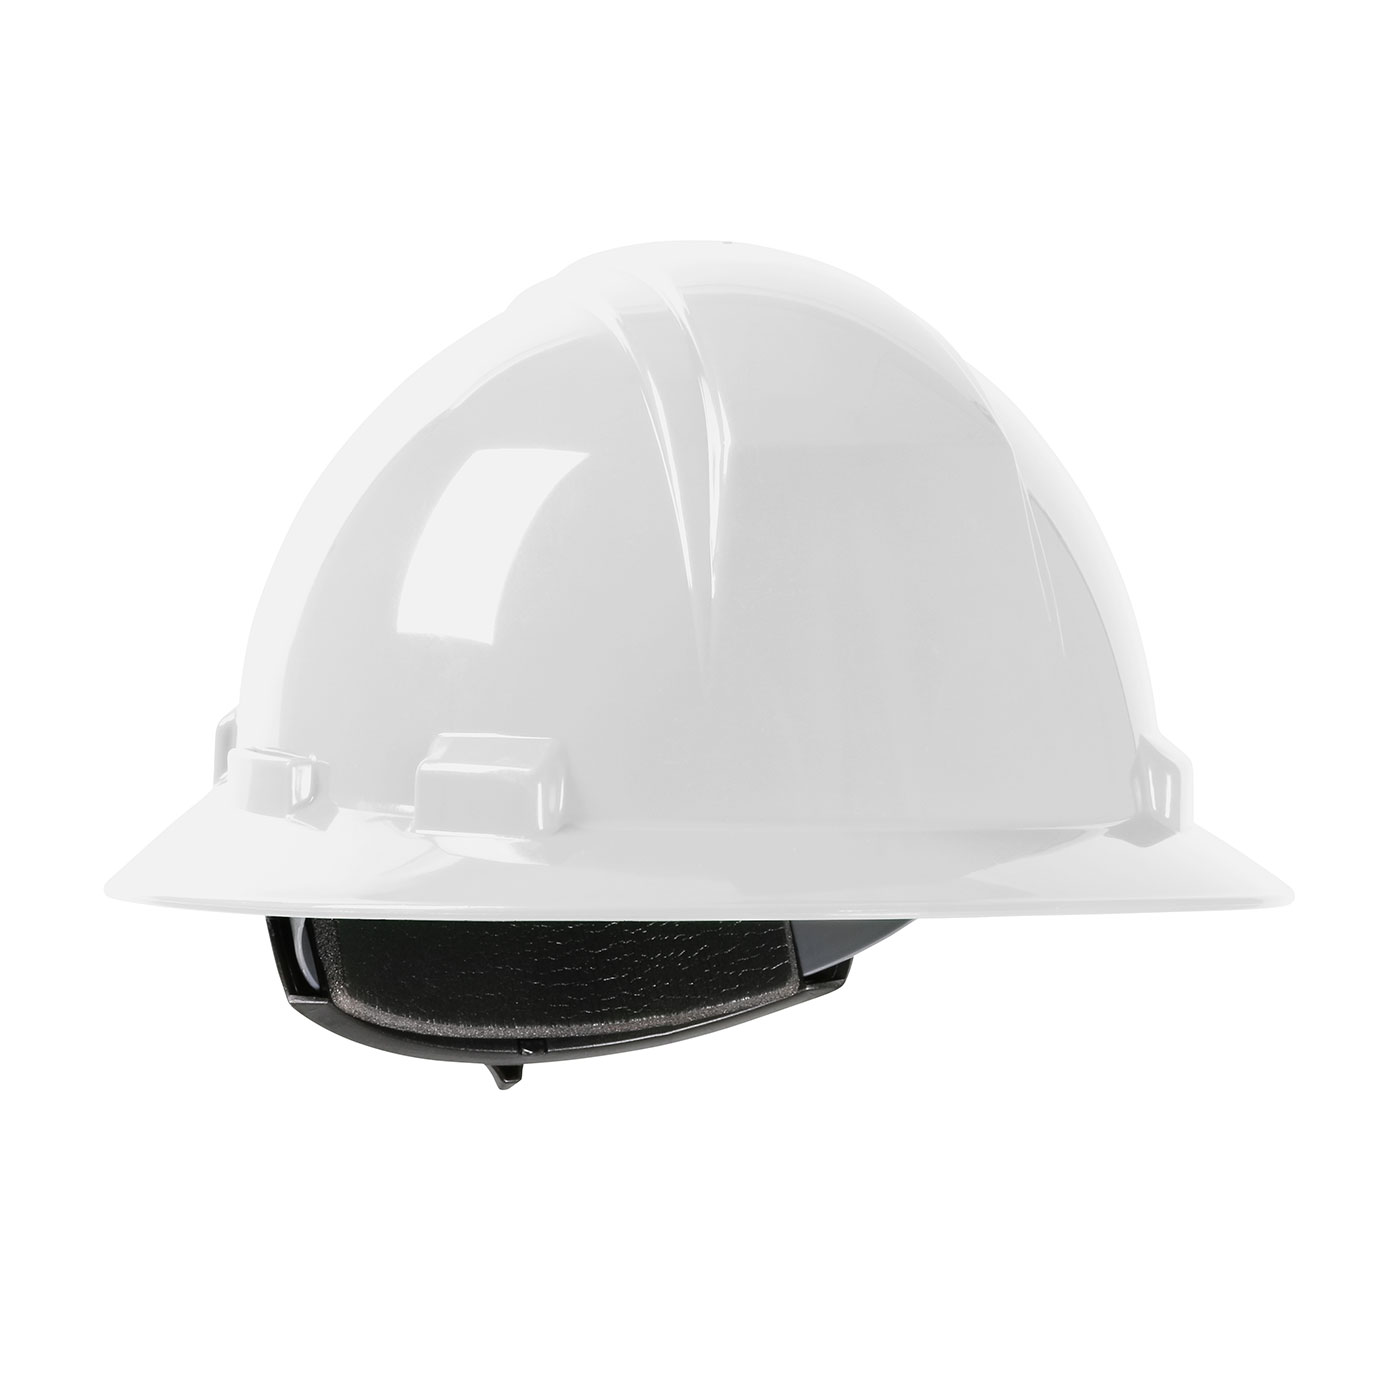 280-HP261R PIP® Dynamic Kilimanjaro™ Full Brim Hard Hat with HDPE Shell, 4-Point Textile Suspension and Wheel Ratchet Adjustment- White